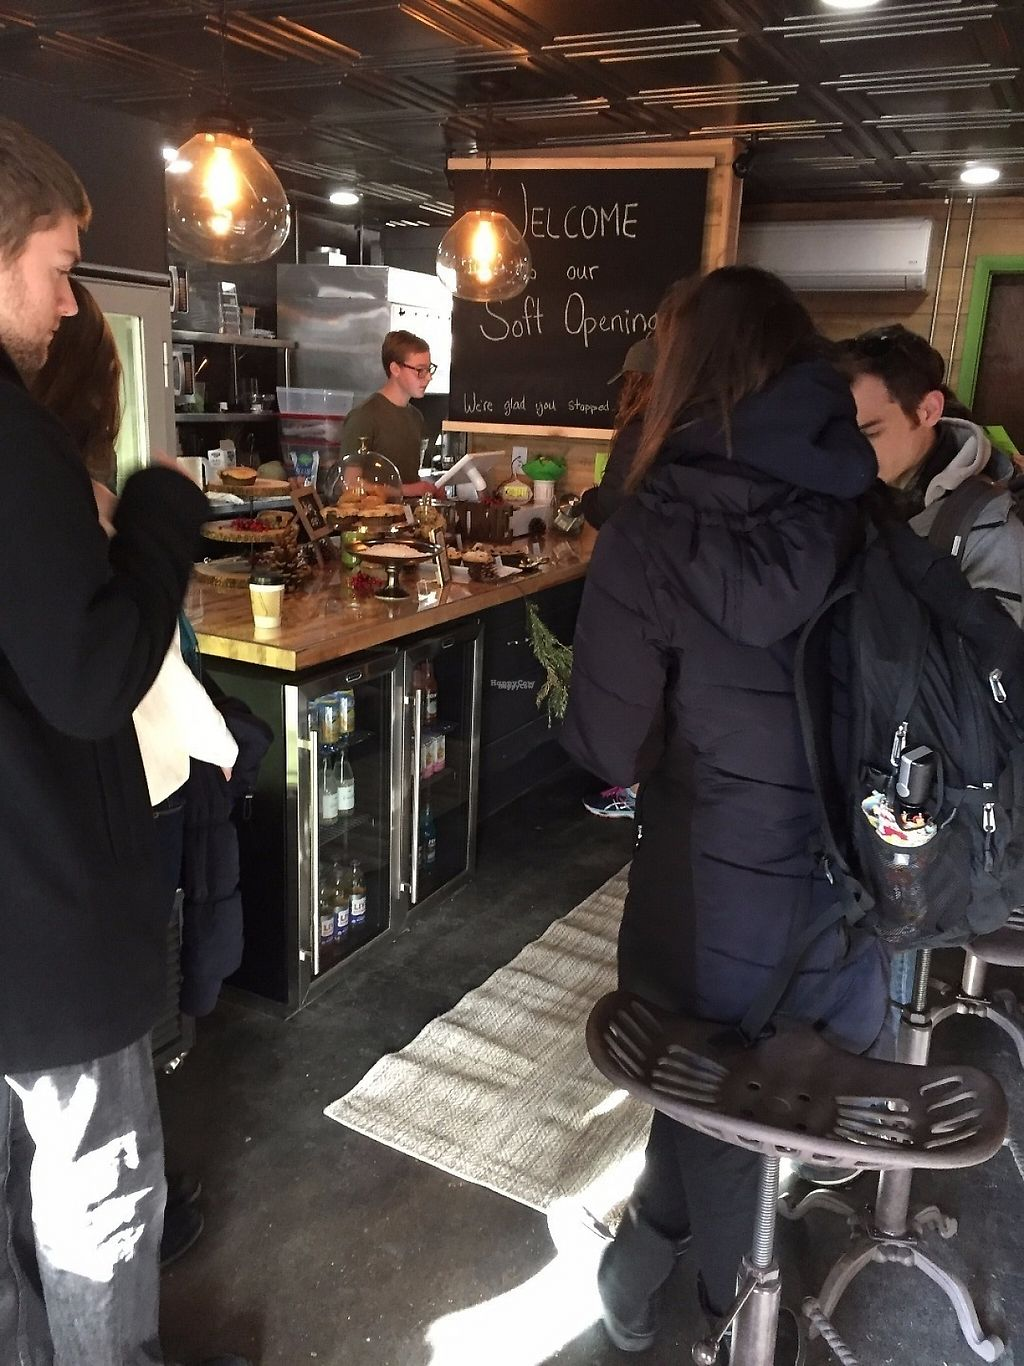 "Photo of Cafe Verve  by <a href=""/members/profile/thetravelier"">thetravelier</a> <br/>Inside of Cafe Verve <br/> December 11, 2016  - <a href='/contact/abuse/image/83830/199246'>Report</a>"